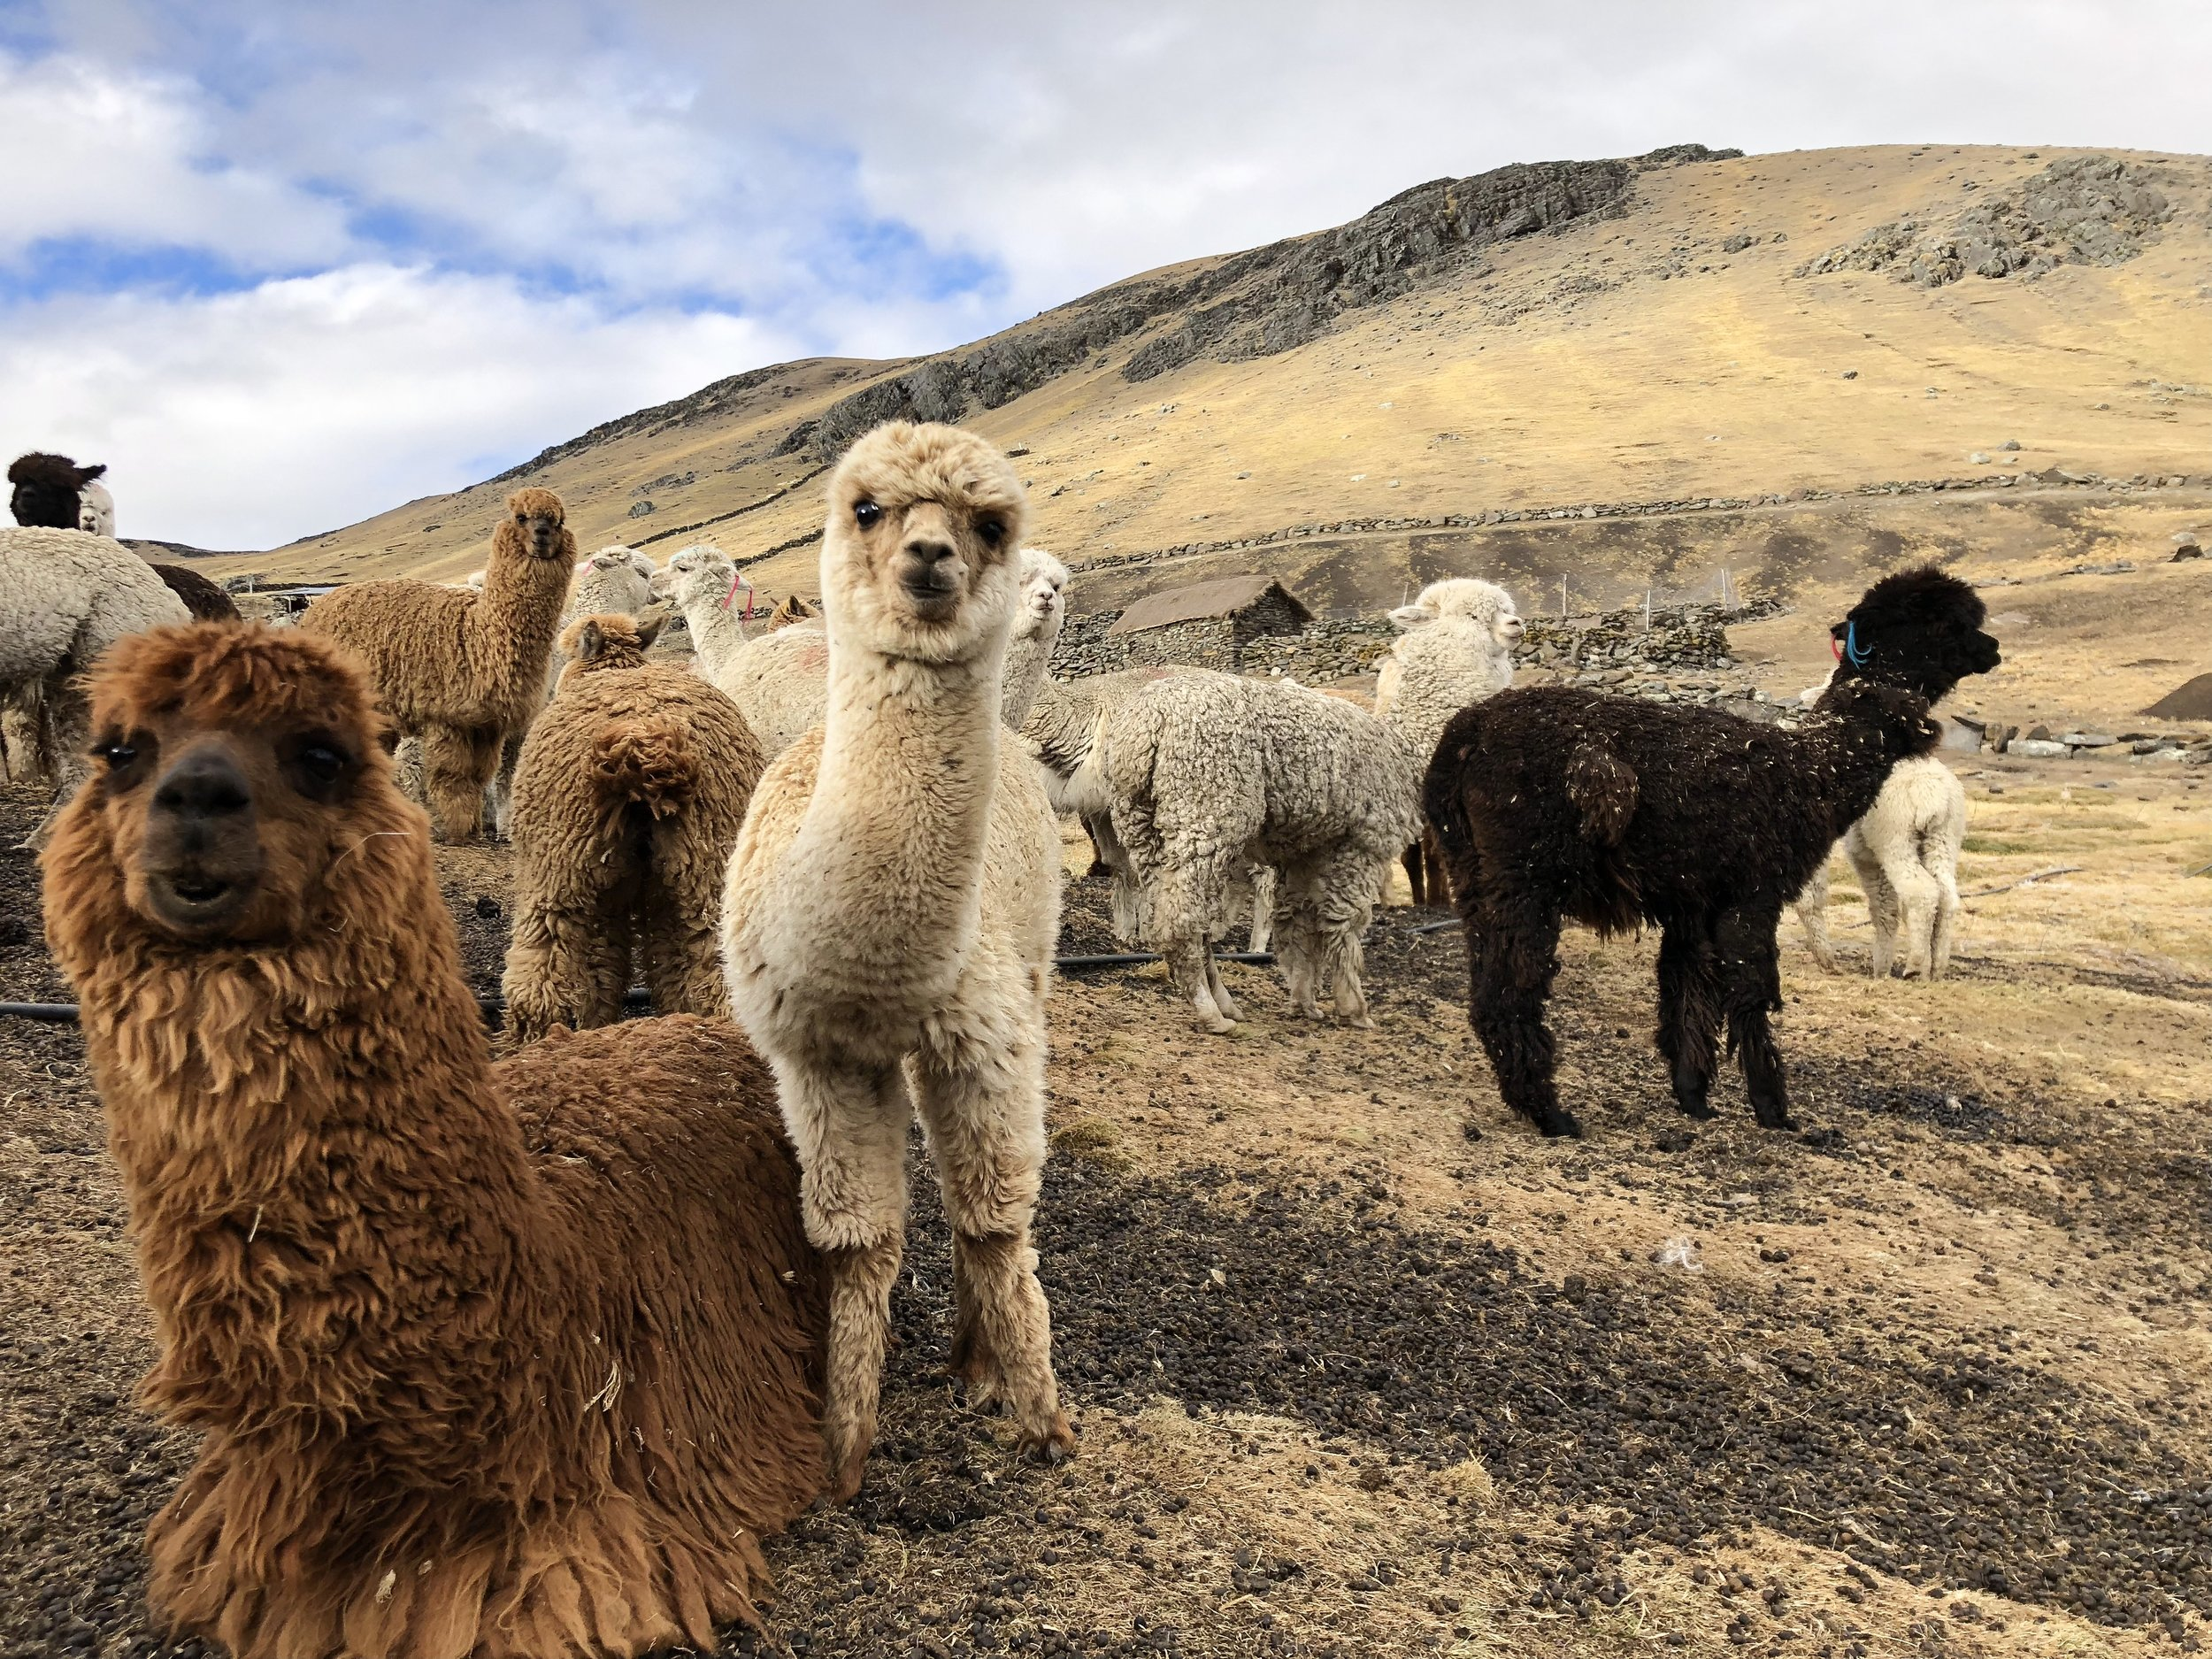 Alpaca does not contain lanolin, making it hypoallergenic and excellent for those with skin sensitivities.